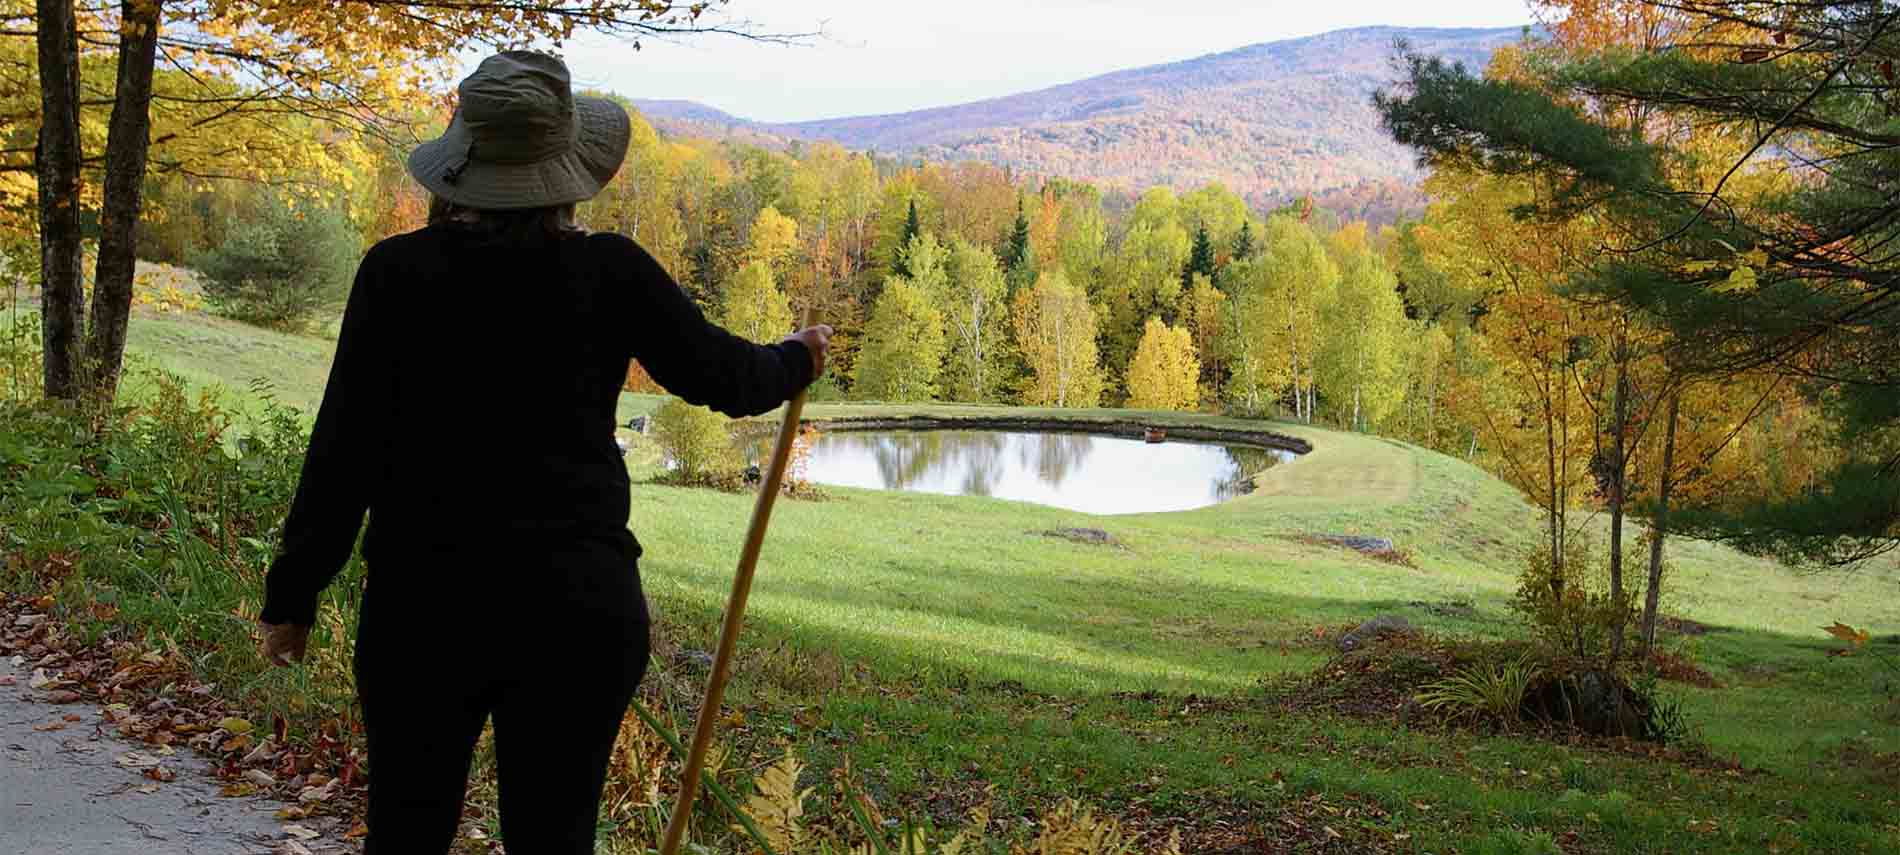 A woman with her walking stick gazing upon a small pond in a field adjascent to hiking path.